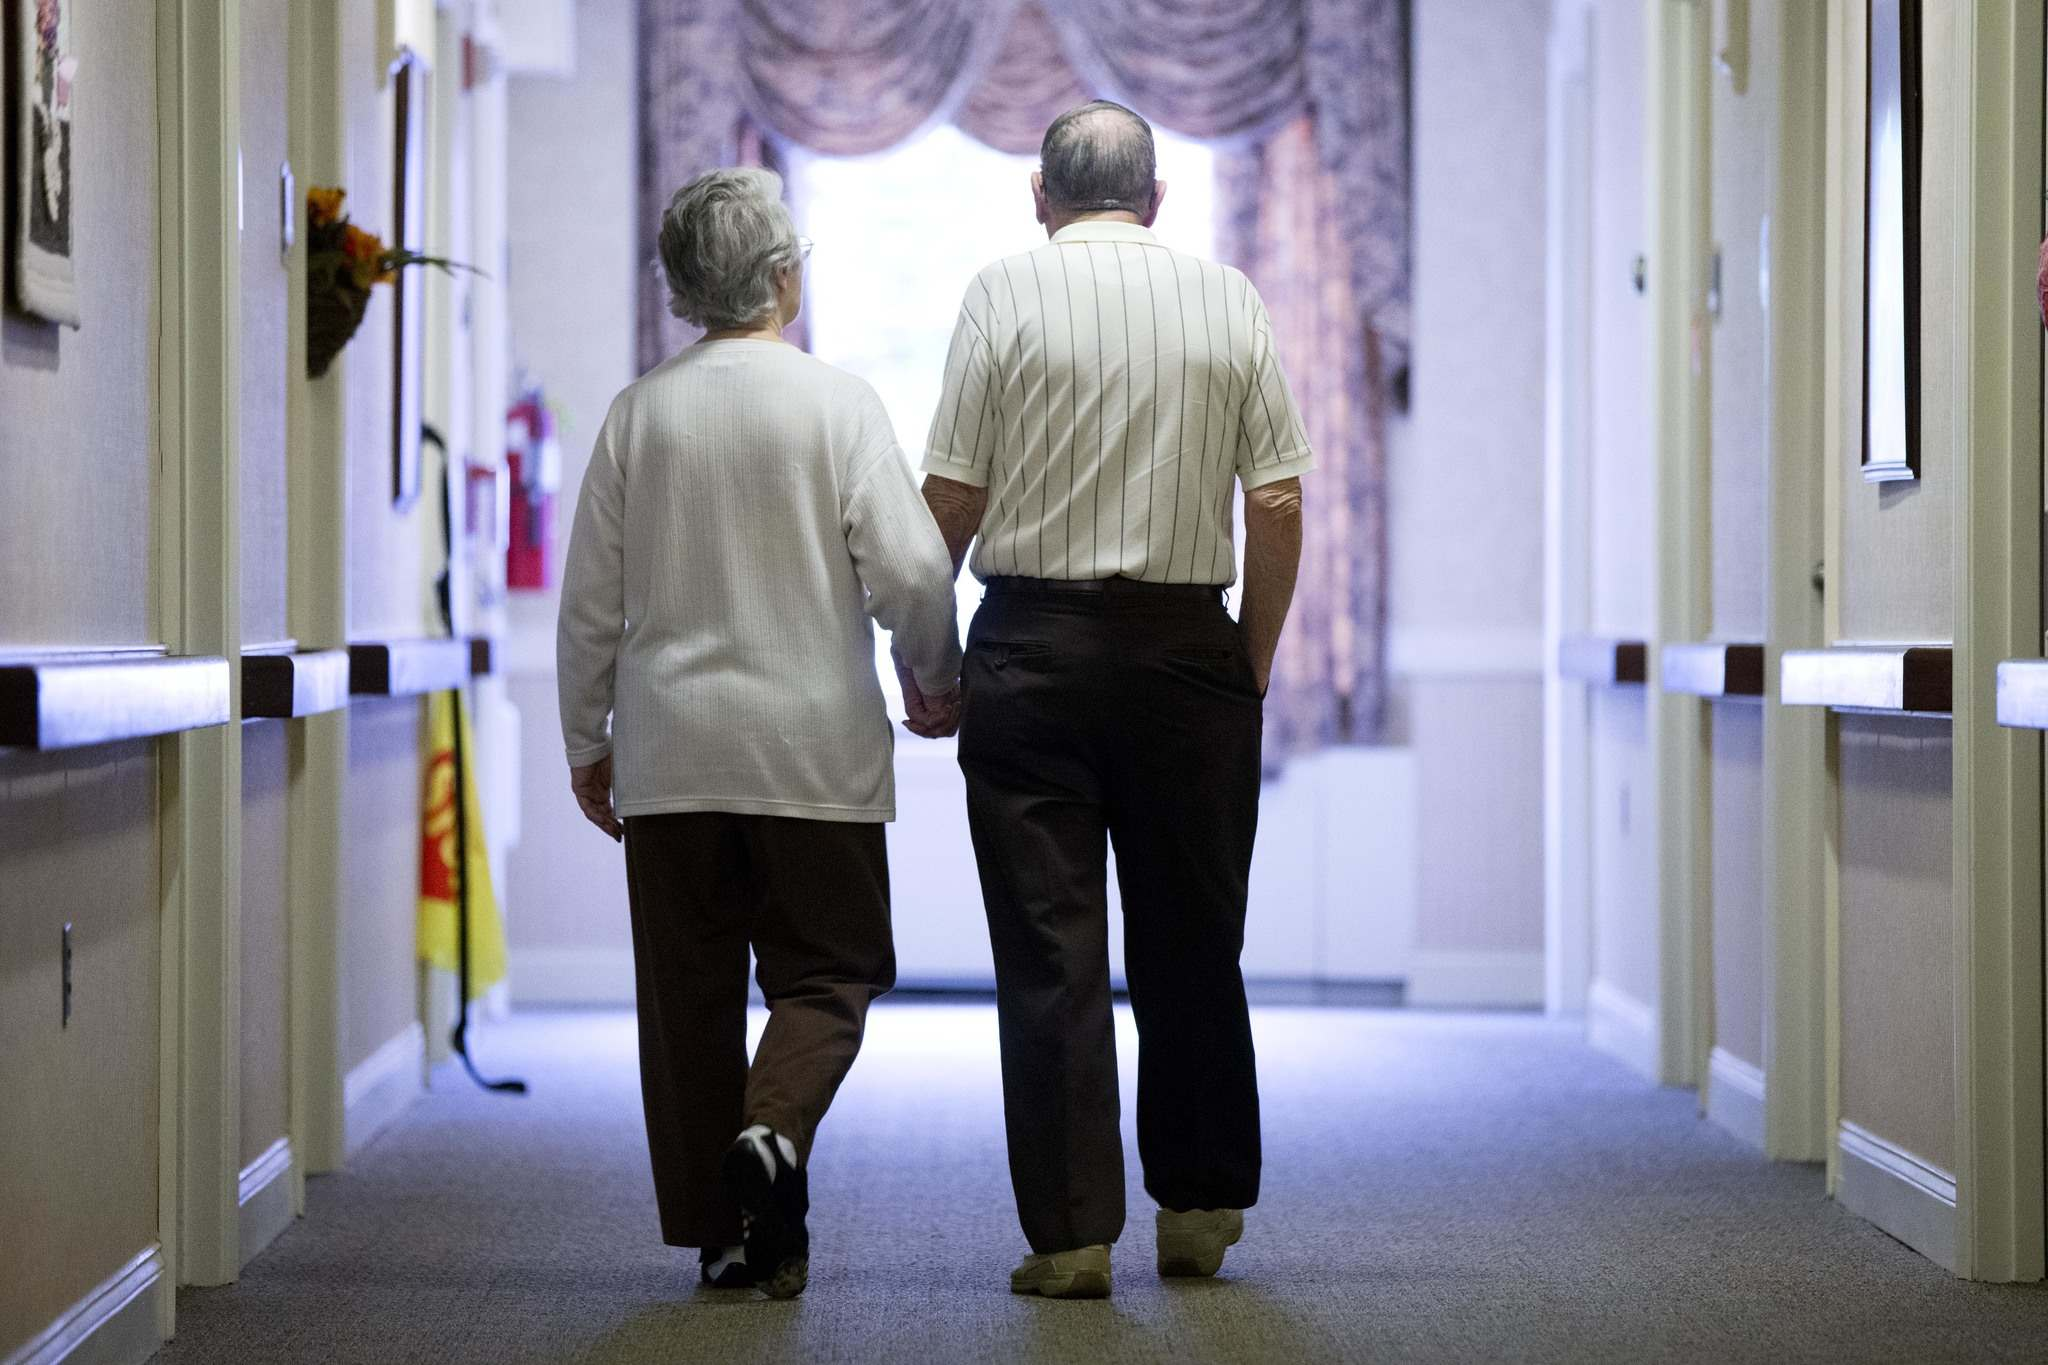 MATT ROURKE / THE ASSOCIATED PRESS FILES</p><p>Seniors' access to home care or assisted living arrangements may be limited by their ability to pay.</p>